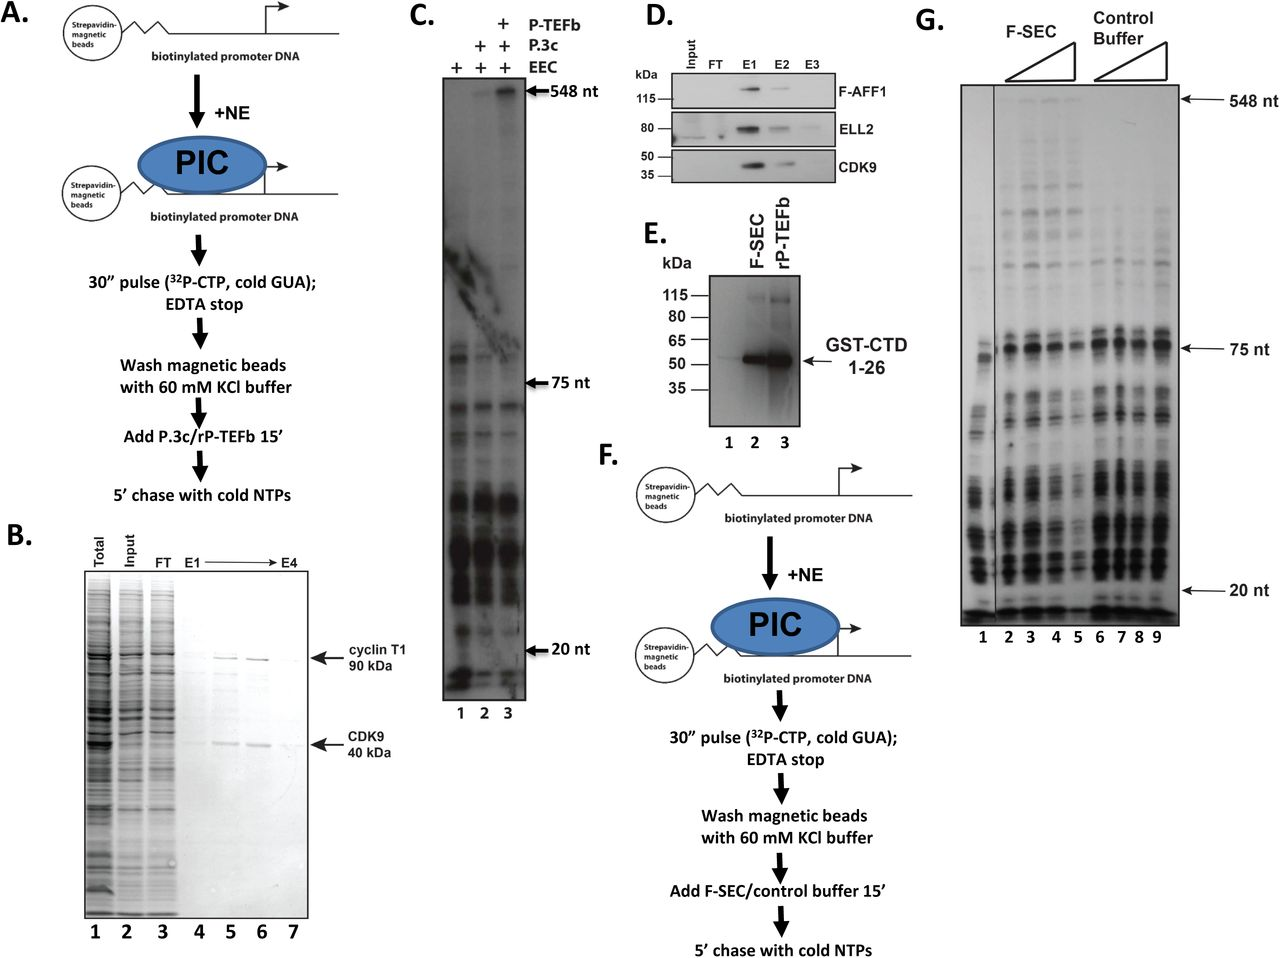 Super Elongation Complex (SEC) and P-TEFb stimulate release of paused RNA pol II A. Shown is a schematic of steps in the immobilized template assays in panels C and F. B. Purification of rPTEFb. Baculovirus expression vectors containing human P-TEFb and cyclin T1 were expressed in Sf9 cells and purified by Ni-Sepharose affinity chromatography. C. Pol II elongation is stimulated by rP-TEFb. Pulsed immobilized templates were isolated after they had been isolated and washed to remove 32 P-CTP/GUA and nuclear extract. The indicated factors (P.3c is a concentrated P11 0.3M elution that contains some elongation activity-see lane 2) were added to immobilized templates and incubated for 15', followed by a chase with unlabeled rNTPs. rP-TEFb plus a P11 elongation fraction (P.3c) was added to immobilized templates and compared to either no additional factors (lane 1) or the P.3c fraction alone (lane 2) as indicated in panel A. D. Purification of F-SEC. Flag-tagged SEC subunit AFF1 was purified from 293 cells using M2-agarose and eluted by excess Flag peptide. Input extract contained undetectable levels of SEC subunits, but which were concentrated by affinity purification (E1-E3), as indicated by western blot analysis for SEC subunits AFF1, ELL2, and CDK9. E. Kinase activity of F-SEC was assessed by incubating purified F-SEC (lane 2) or rP-TEFb (positive control, lane 3) with the known substrate GST-CTD, containing the first 26 repeats of human pol II CTD. Phosphorylation was detected by western blot using an anti-phosphoserine 2 CTD antibody. Lane 1 contains only the GST-CTD and the kinase reaction buffer. F. Schematic shows the steps in the immobilized template assay in panel G. G. F-SEC stimulates release of paused pol II. Either purified F-SEC or the control elution buffer were titrated into pulsed immobilized templates after they had been isolated and washed to remove 32 P-CTP /GUA and nuclear extract. After a 15' incubation, unlabeled NTPs were added for 5' to chase any elongation competent pol II into making full-length RNAs.